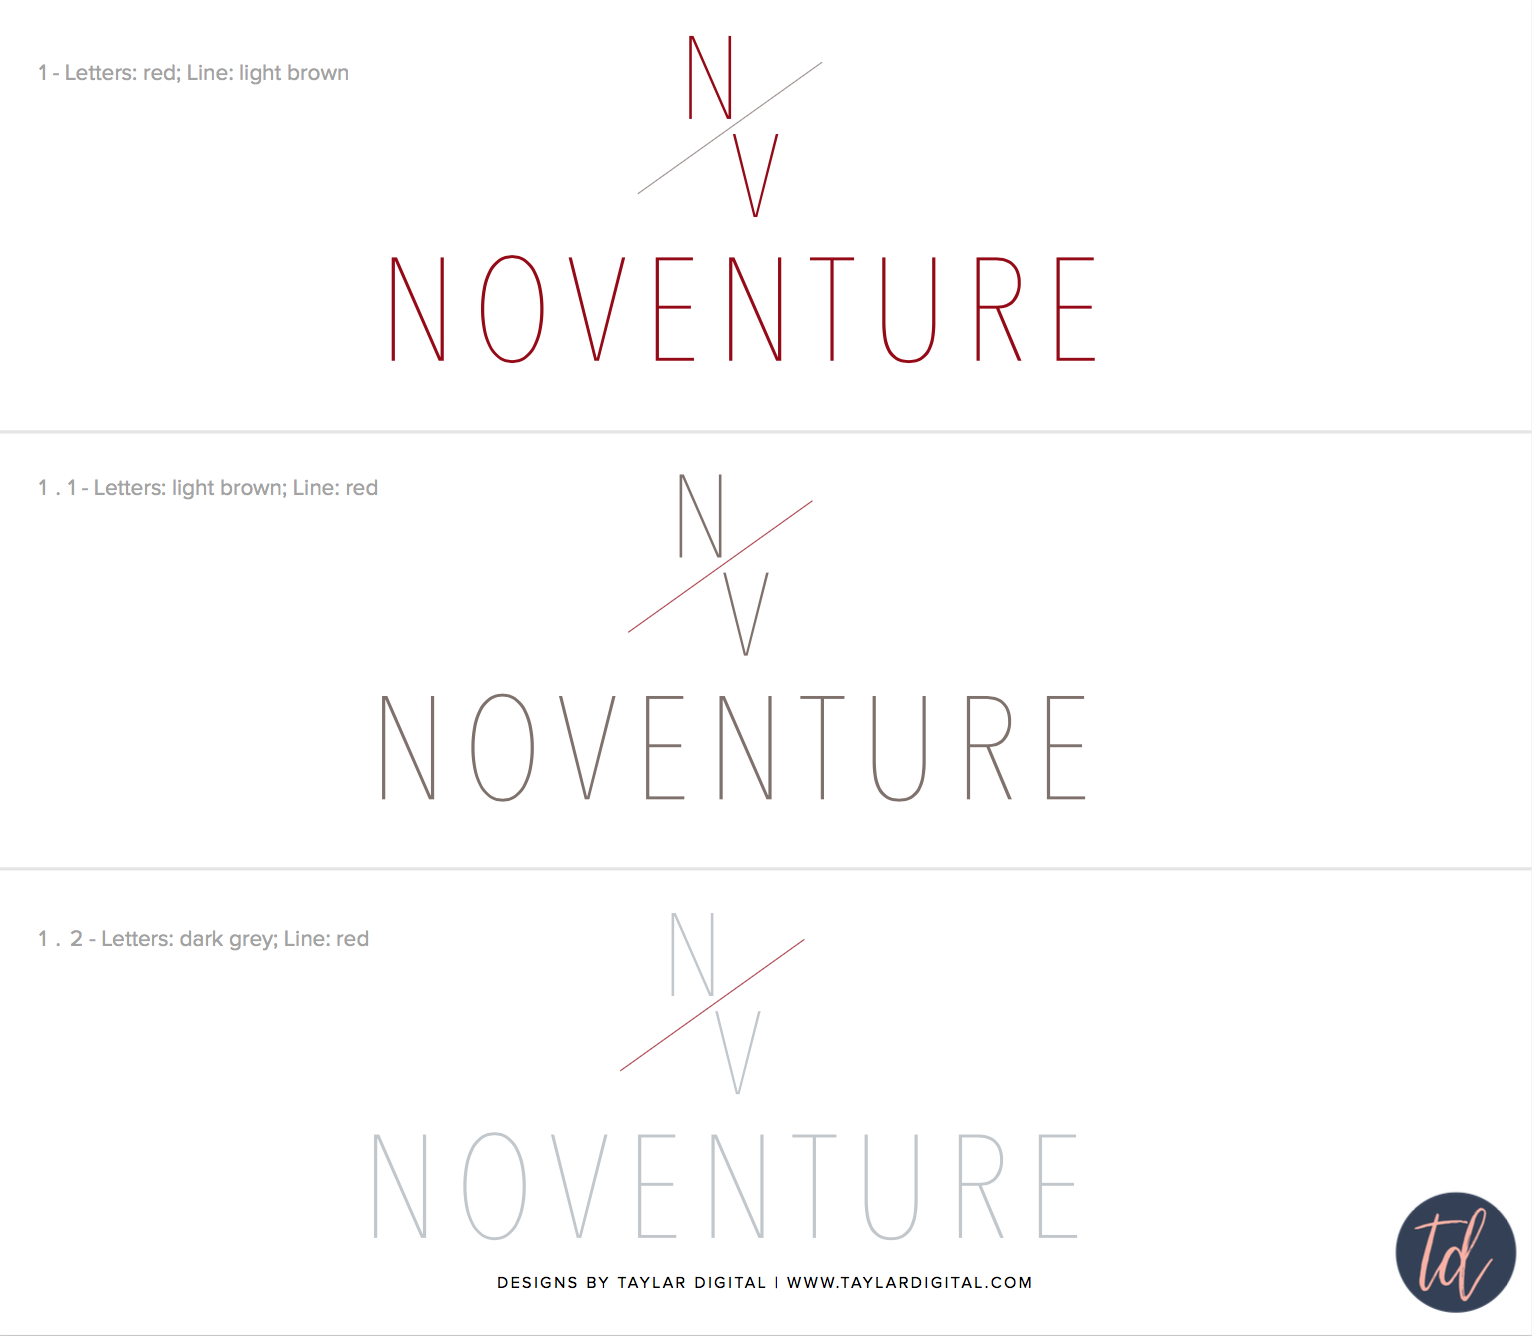 Noventure logo concepts in color